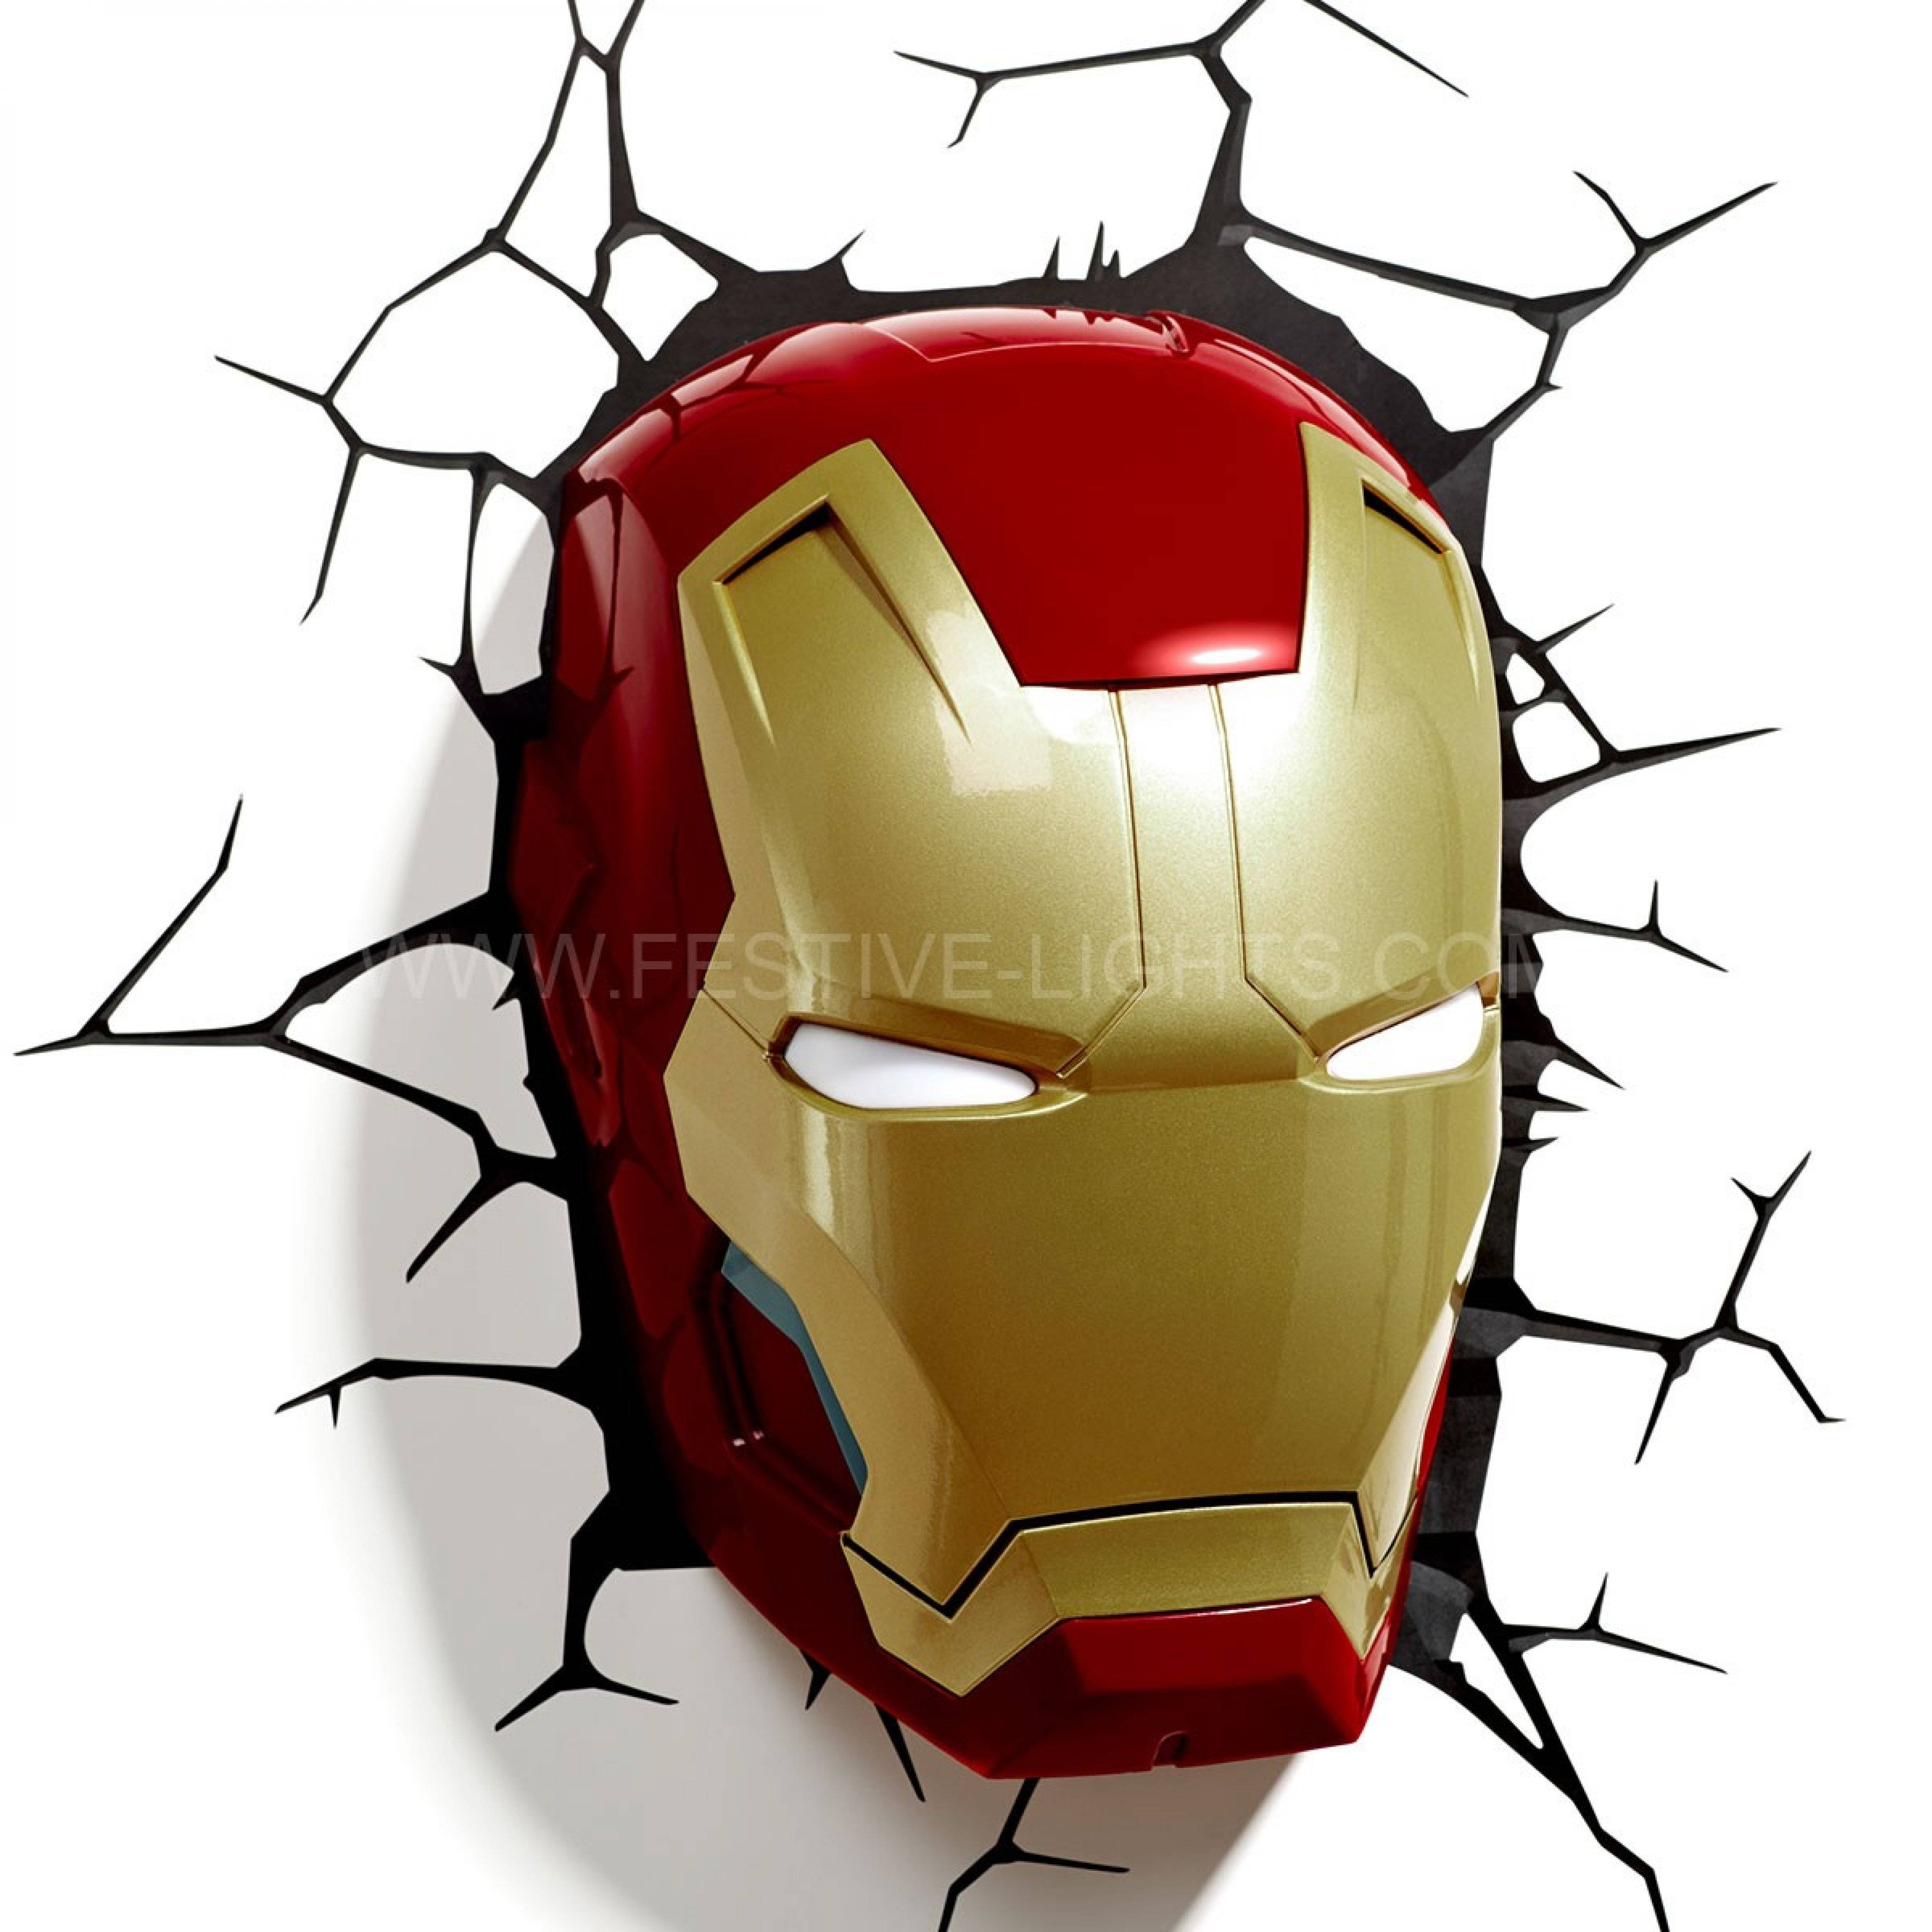 Image Gallery of Iron Man 3D Wall Art (View 2 of 20 Photos)